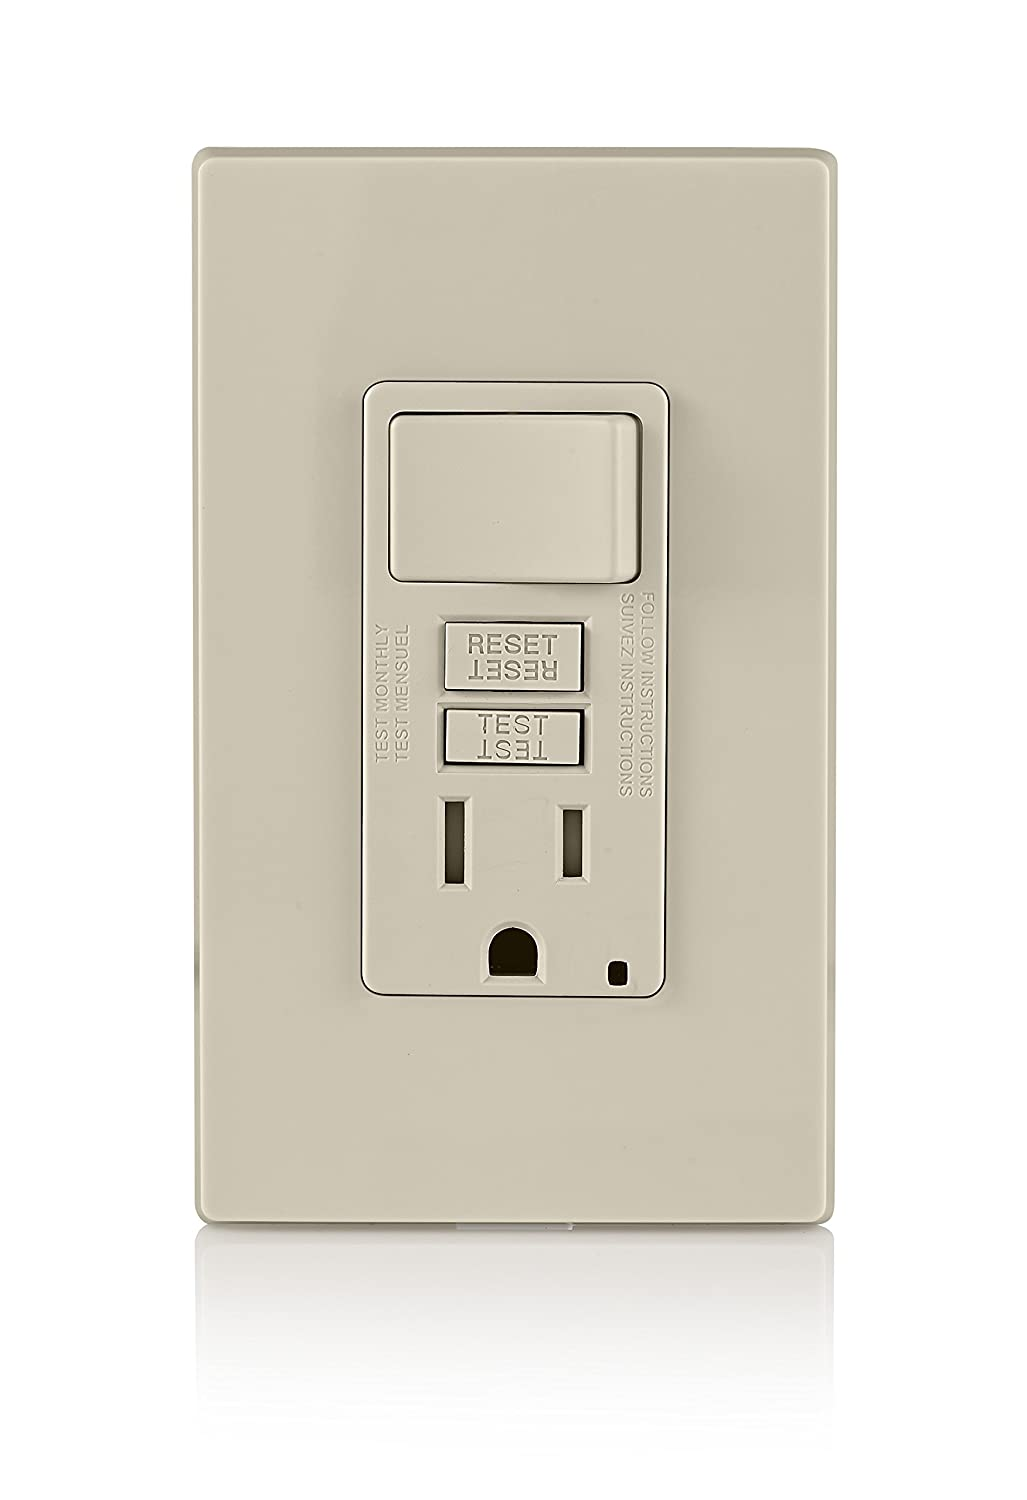 Wiring Leviton Bination Switch Outlet Wiring Diagram Wiring Diagrams